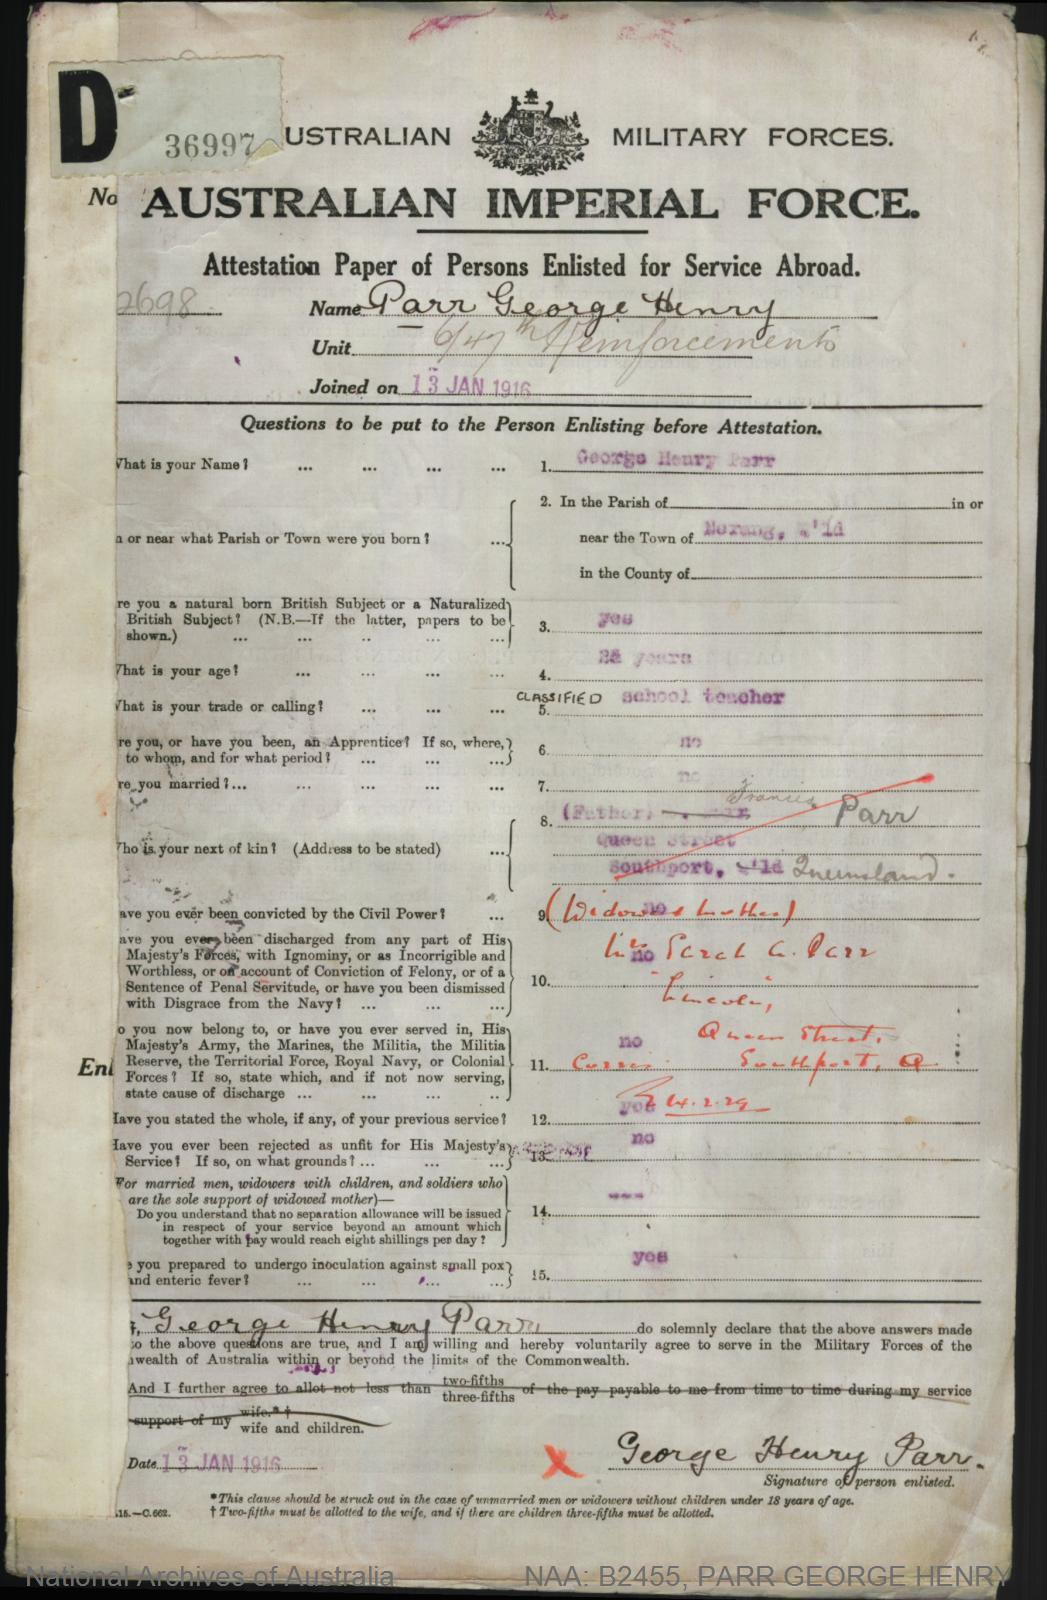 PARR George Henry : Service Number - 2698 : Place of Birth - Nerang QLD : Place of Enlistment - Brisbane QLD : Next of Kin - (Mother) PARR Sarah